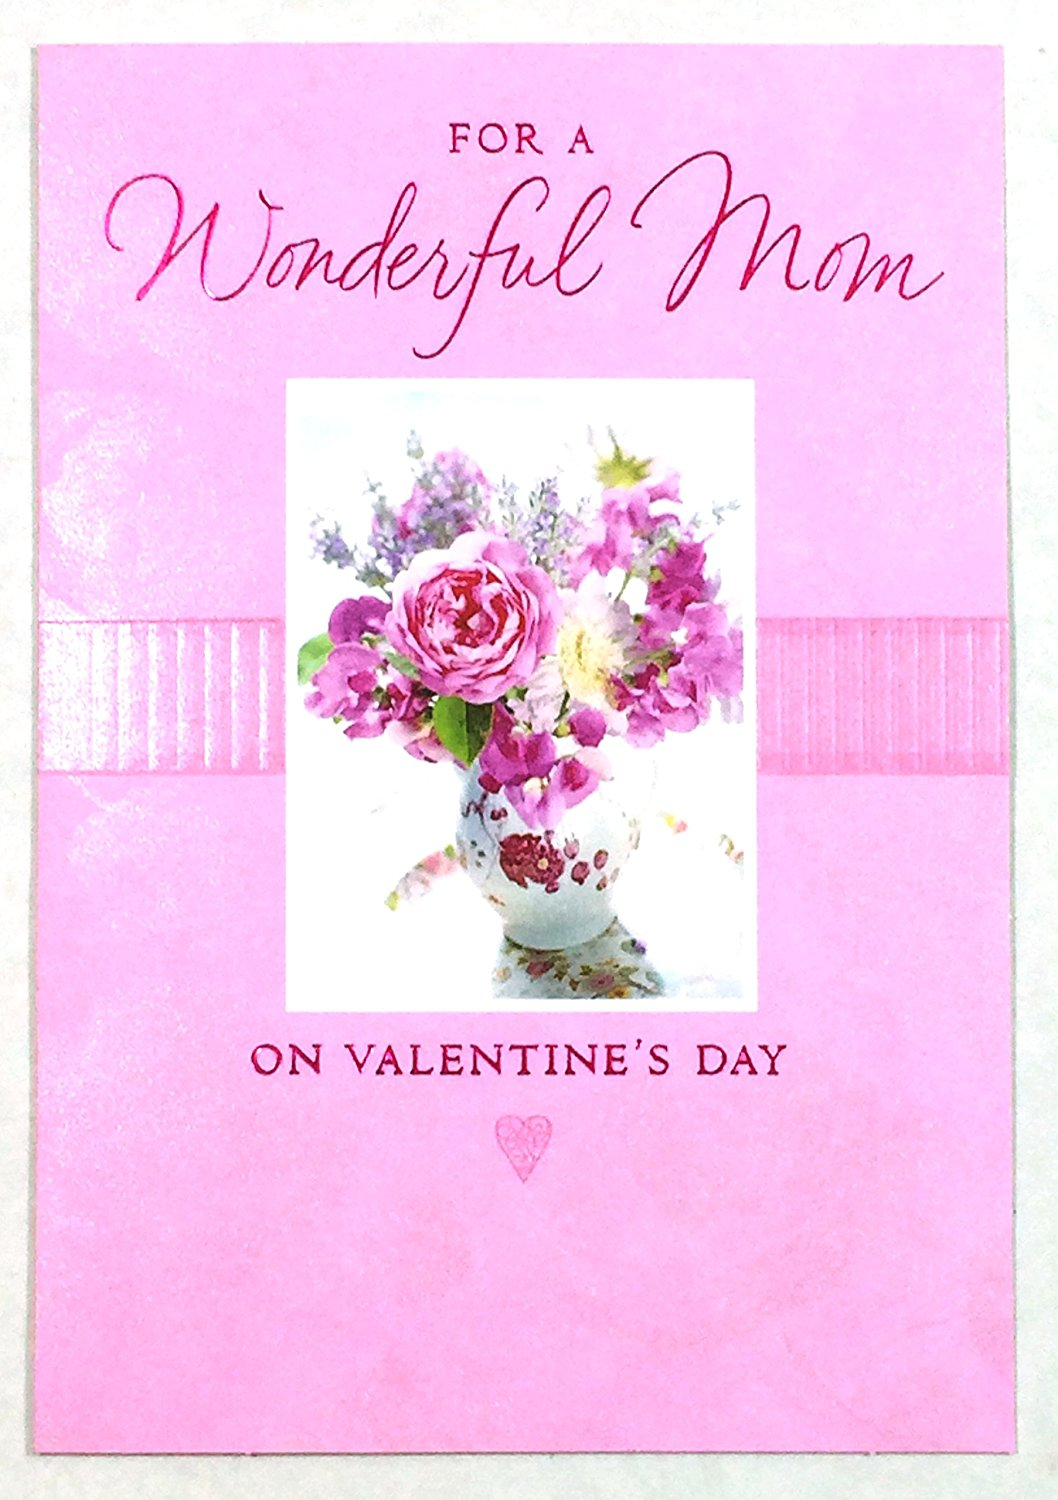 Cheap mom day card find mom day card deals on line at alibaba get quotations valentines card mom for a wonderful mom on valentines day hallmark m4hsunfo